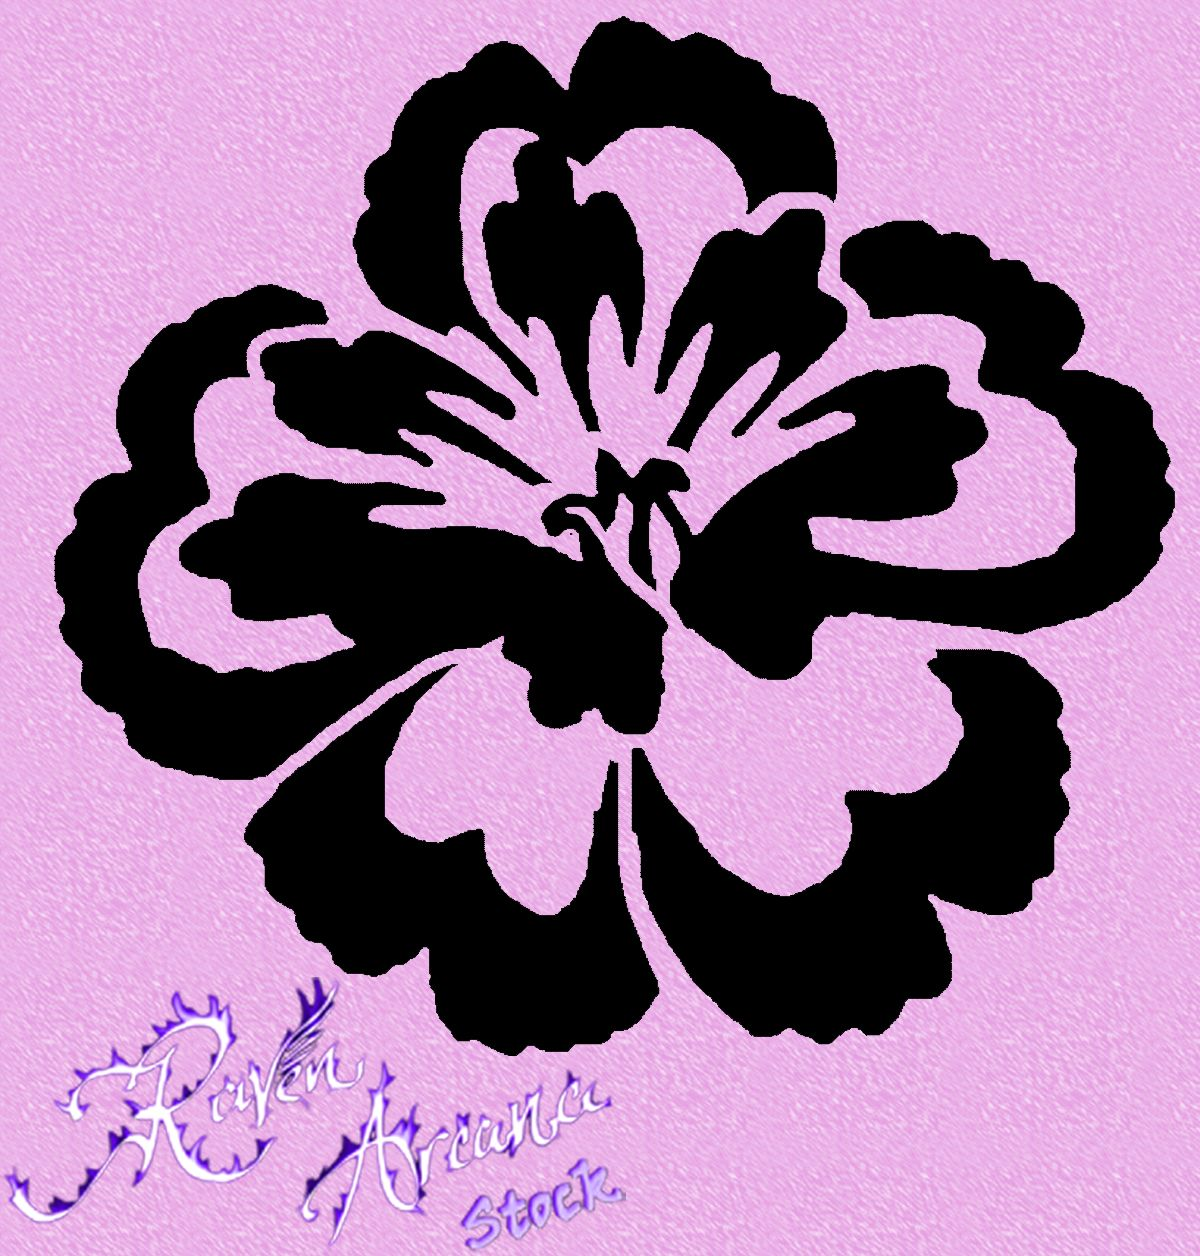 Free stencil templates for walls flower stencil 1 psd by flower stencil 1 psd izmirmasajfo Images